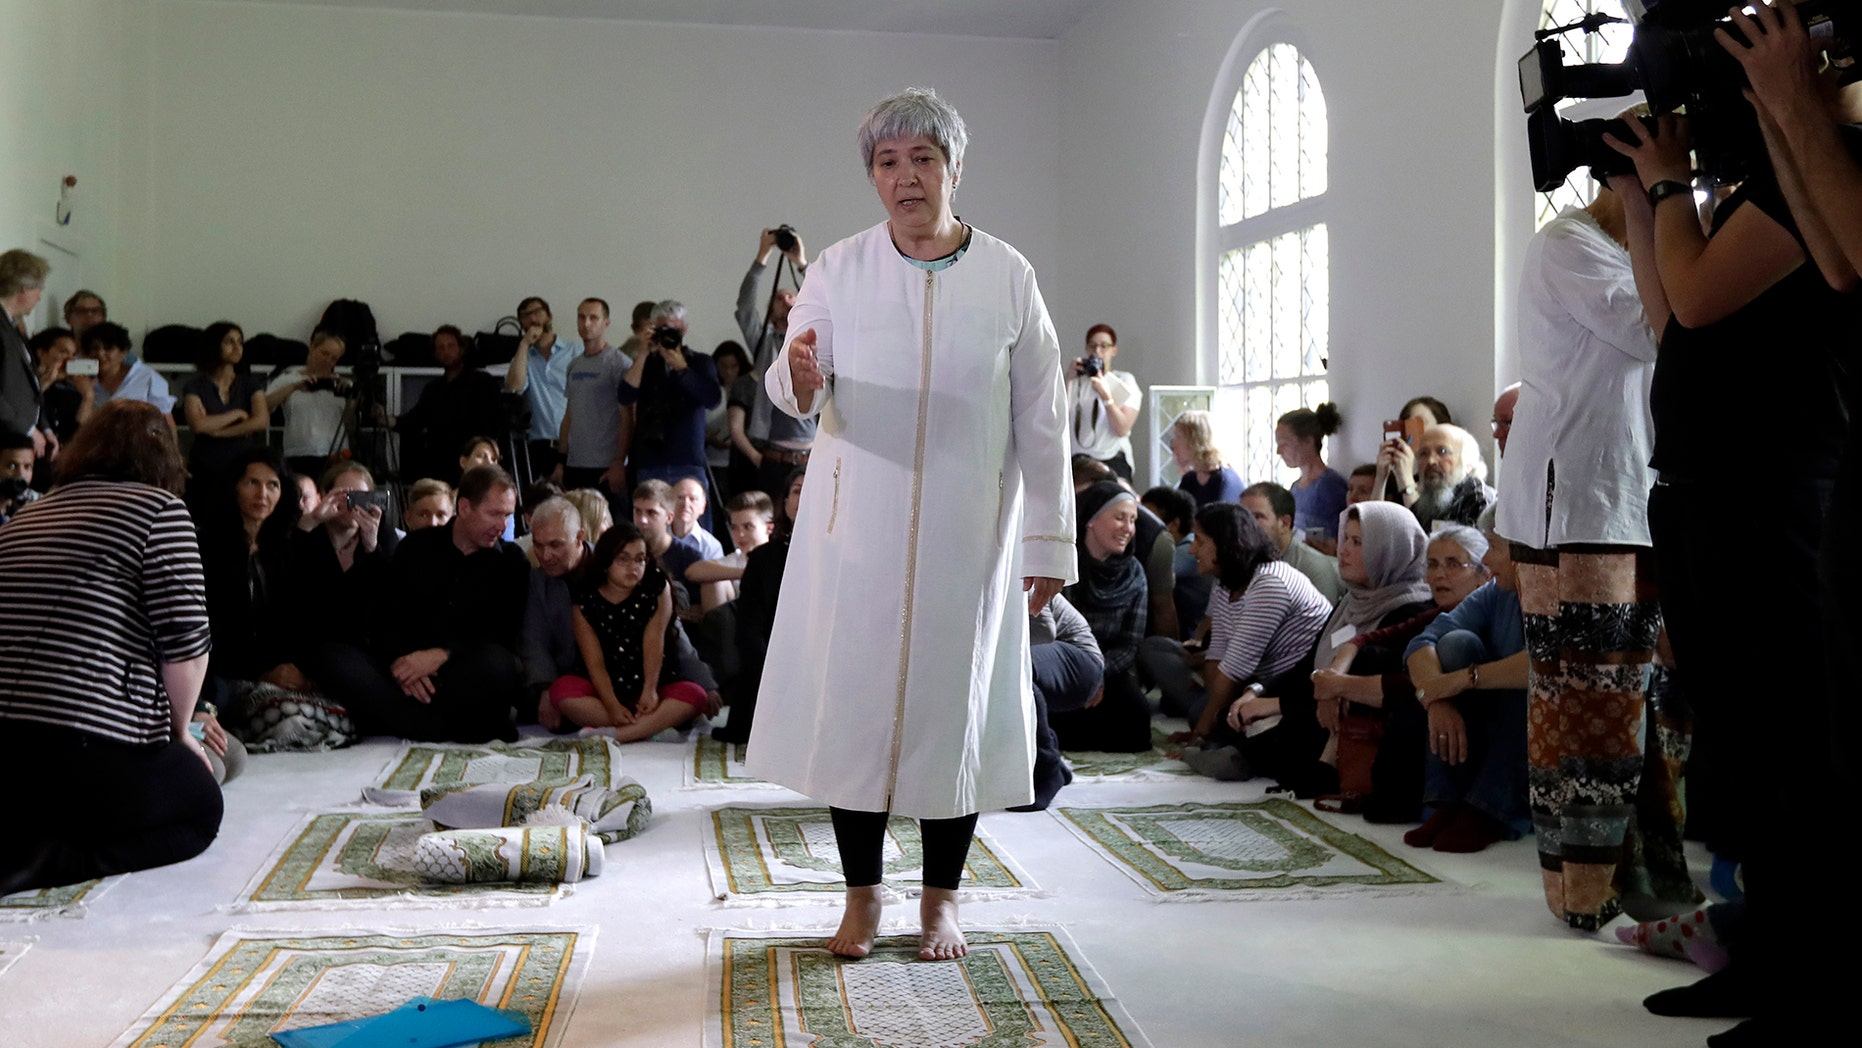 Seyran Ates, standing at center, founder of the Ibn-Rushd-Goethe-Mosque gestures during the opening of the mosque in Berlin, Germany, Friday, June 16, 2017.